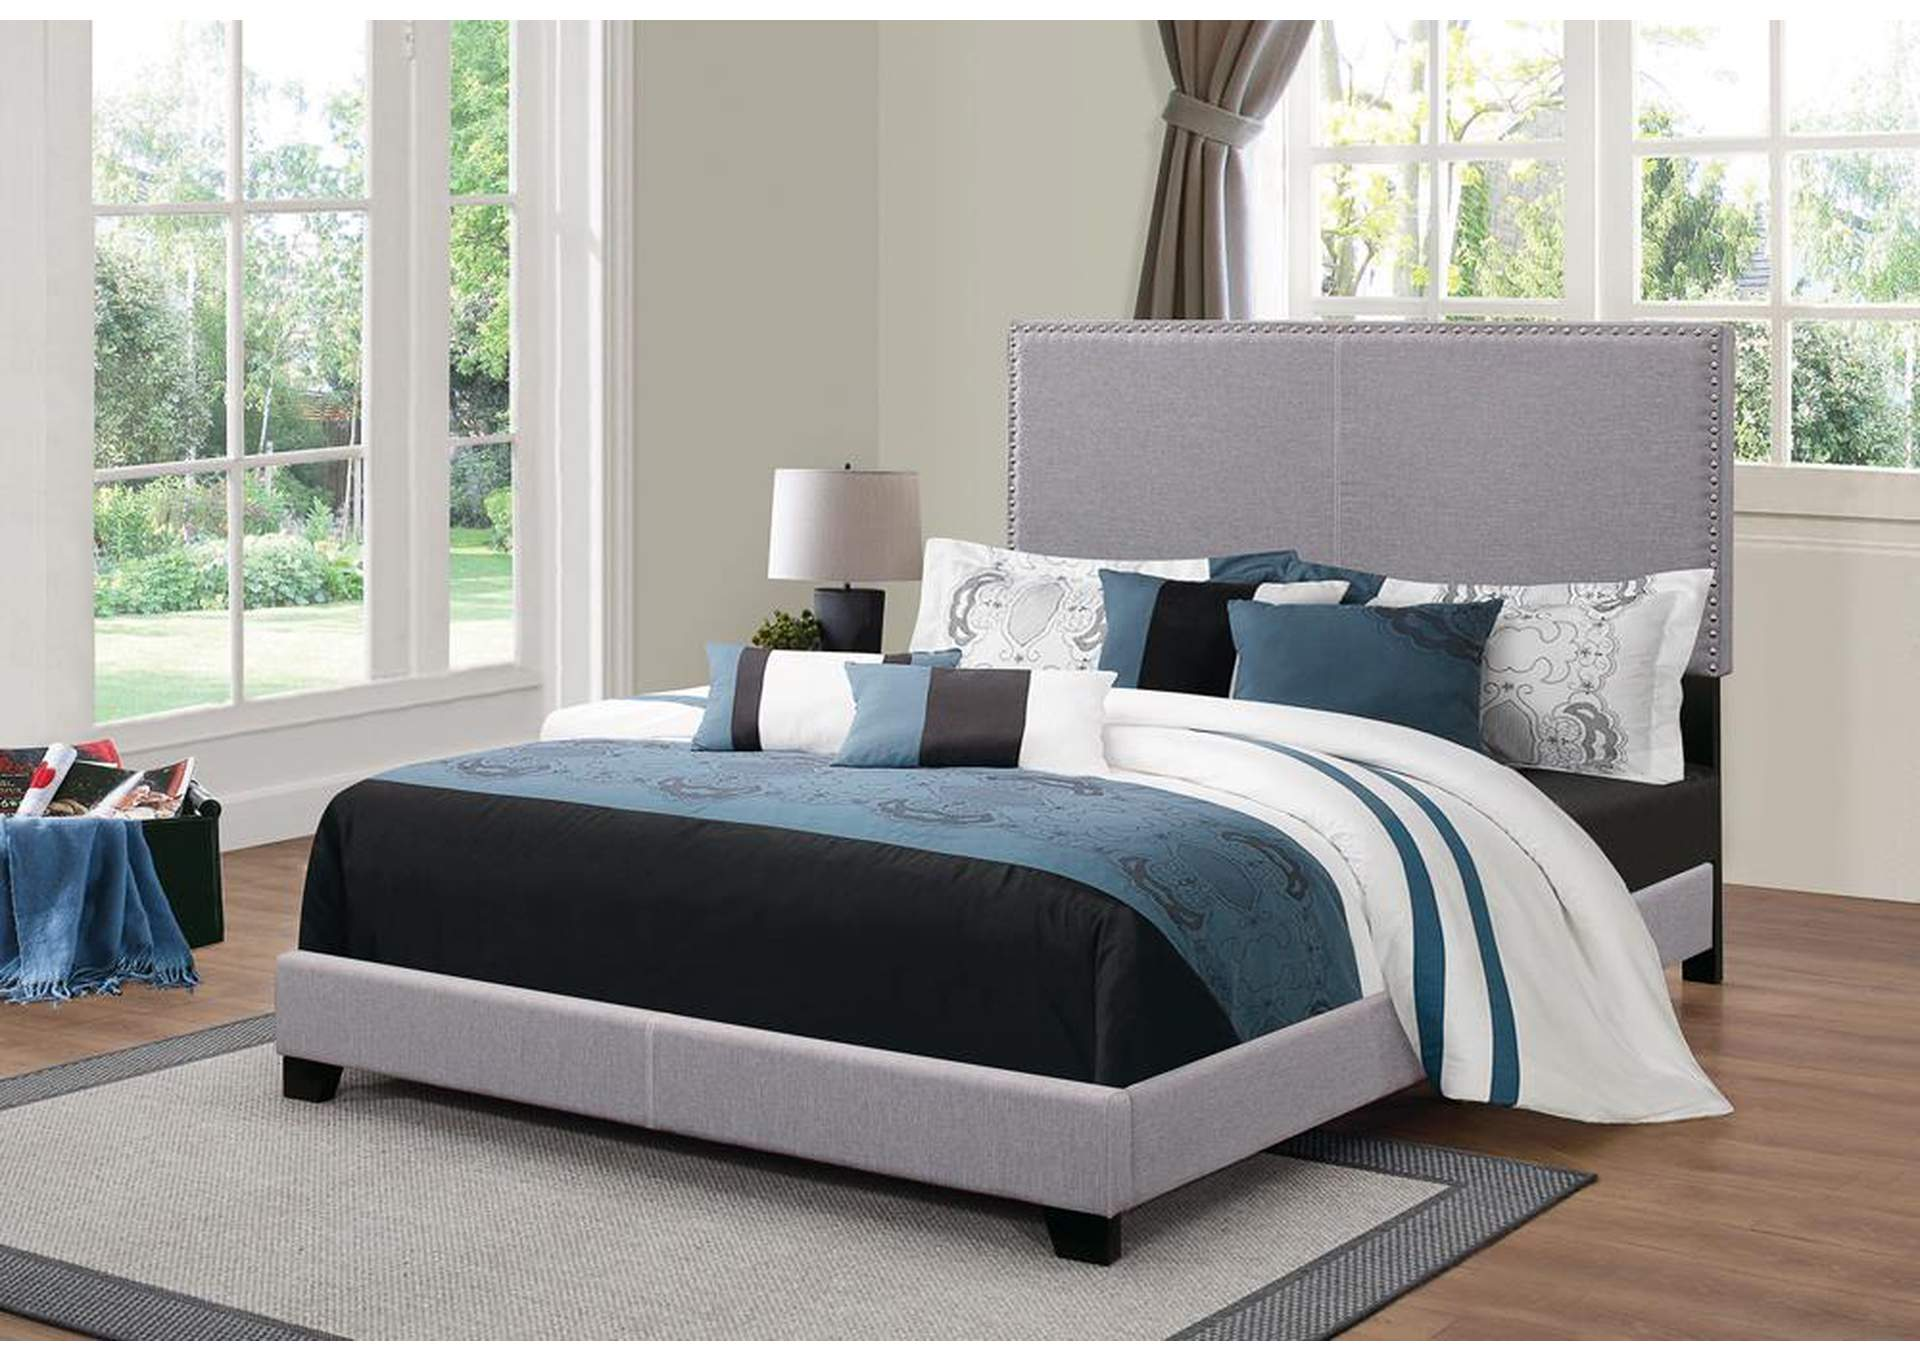 Davis Home Furniture Asheville Nc Grey Upholstered Twin Bed